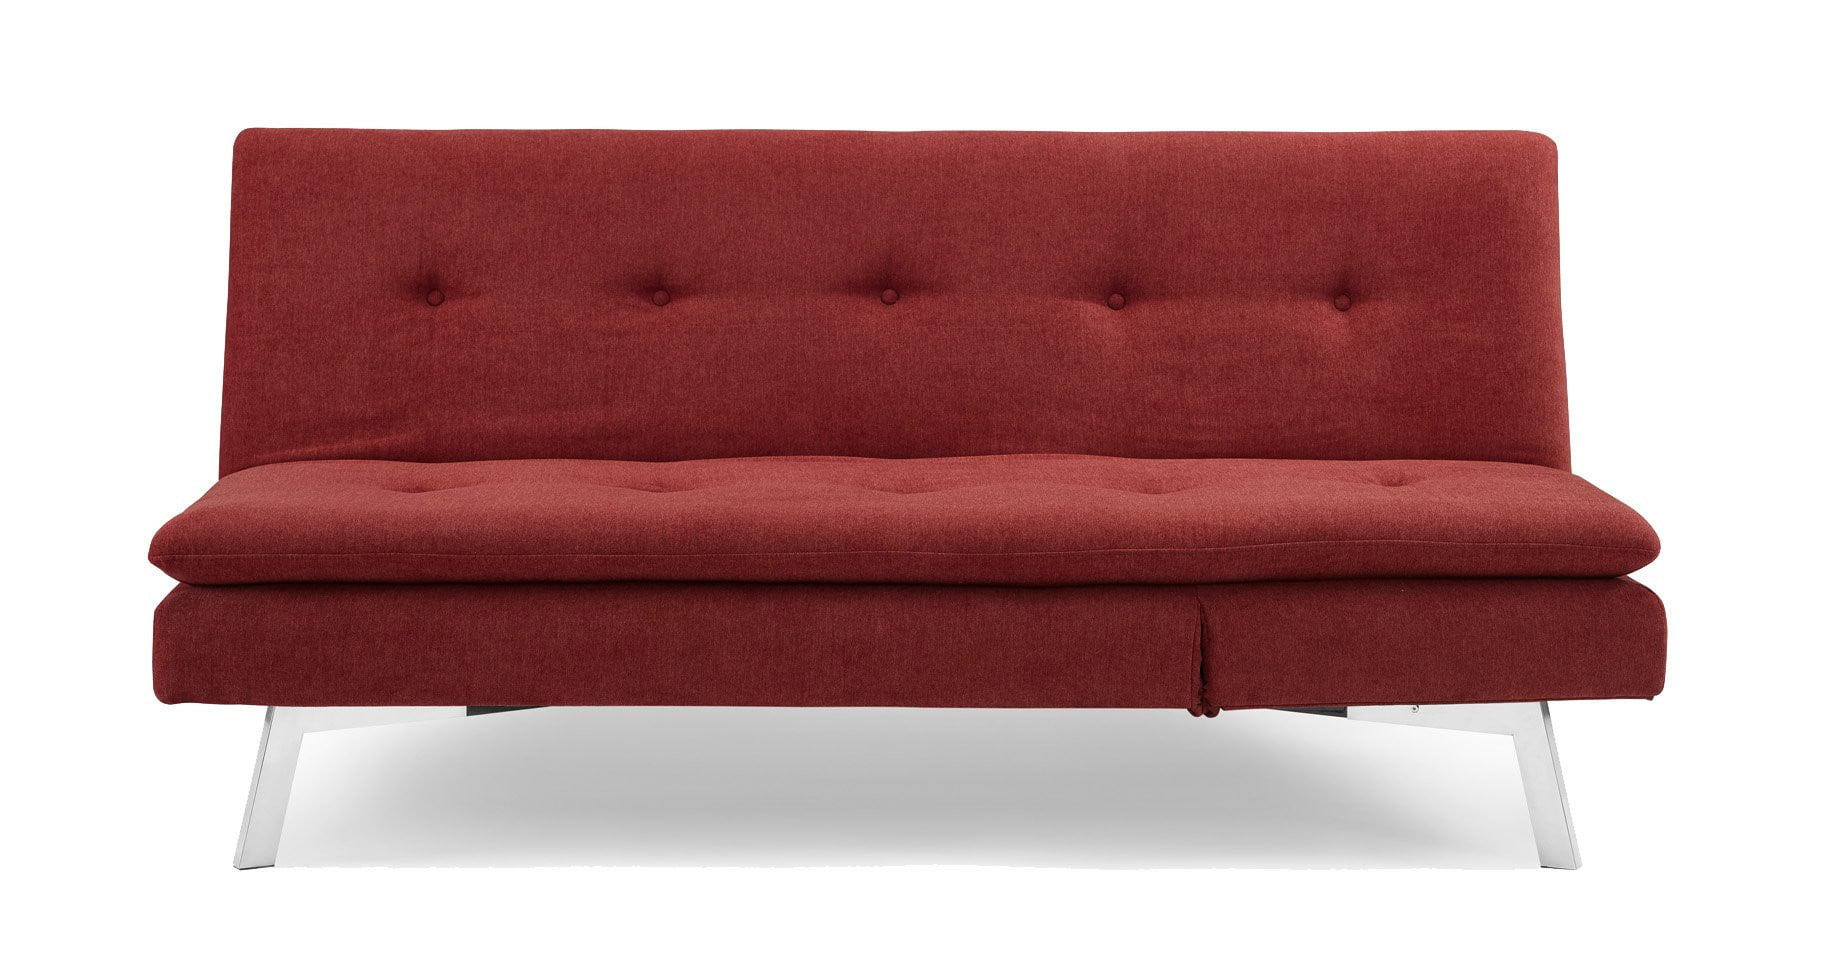 Chicago Sealy Sofa Sleeper Convertible - sofacreations